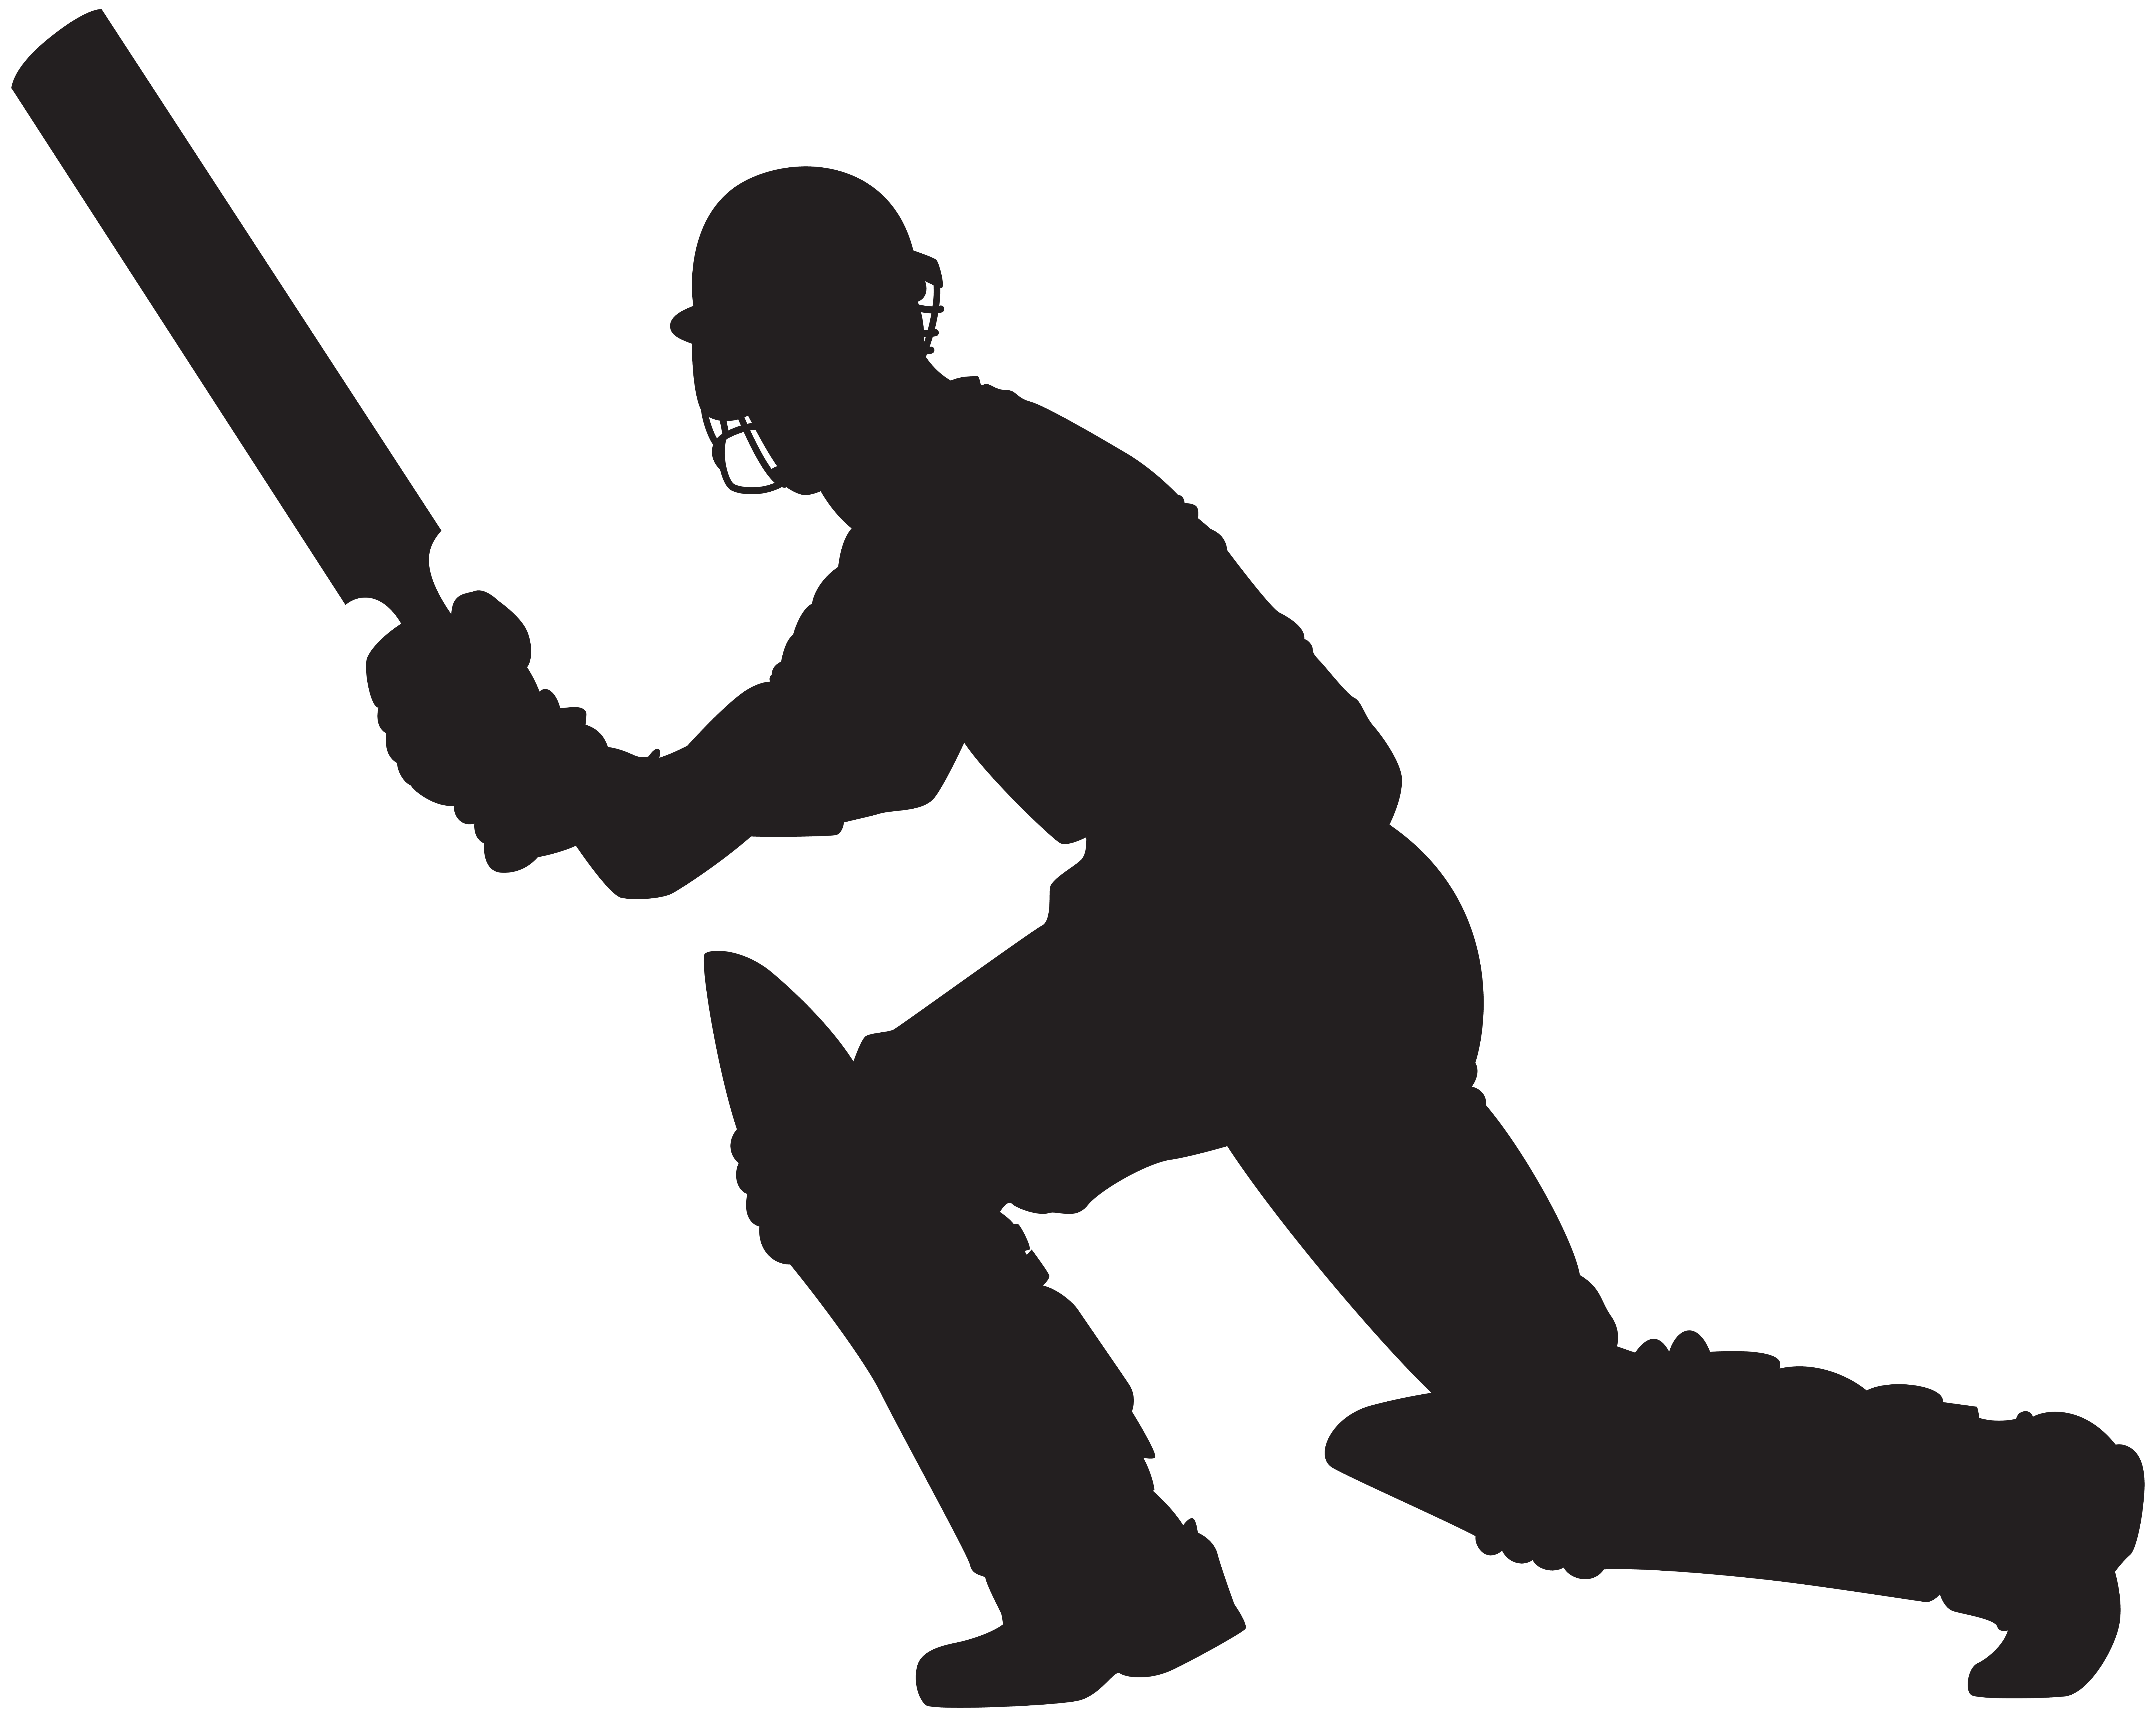 Clipart baseball silhouette. Cricket player png clip